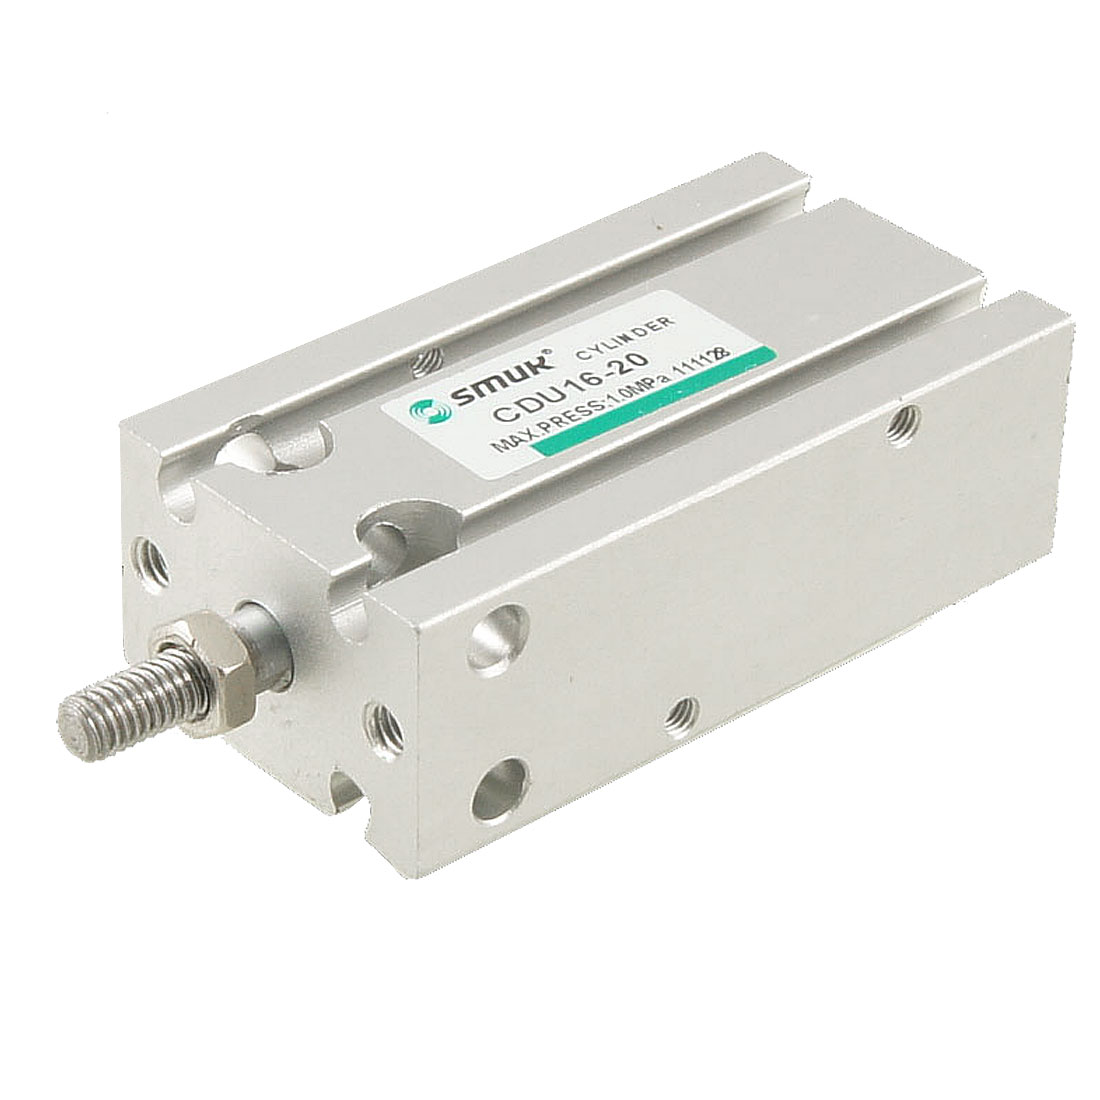 Double Action 16mm Bore 20mm Stroke Single Rod Pneumatic Air Cylinder